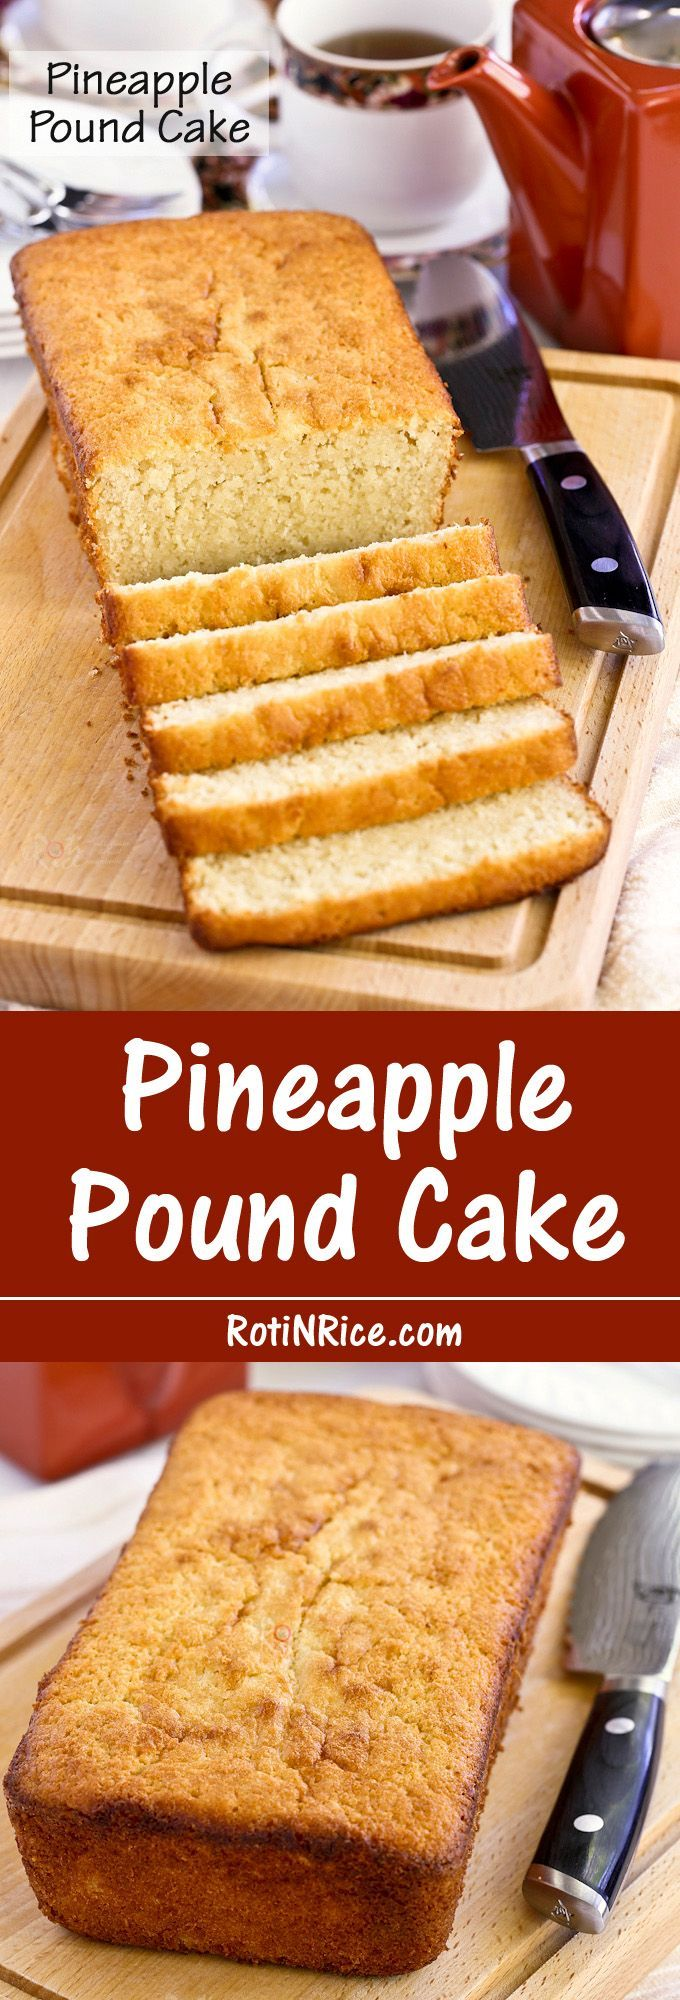 Pound Cake This Pineapple Pound Cake is made with pineapple puree for a finer and smoother textured pineapple cake. It is deliciously moist and tender. | Food to gladden the heart at This Pineapple Pound Cake is made with pineapple puree for a finer and smoother textured pineapple cake. It is deliciously moist and tender. | Food to gladden the heart at